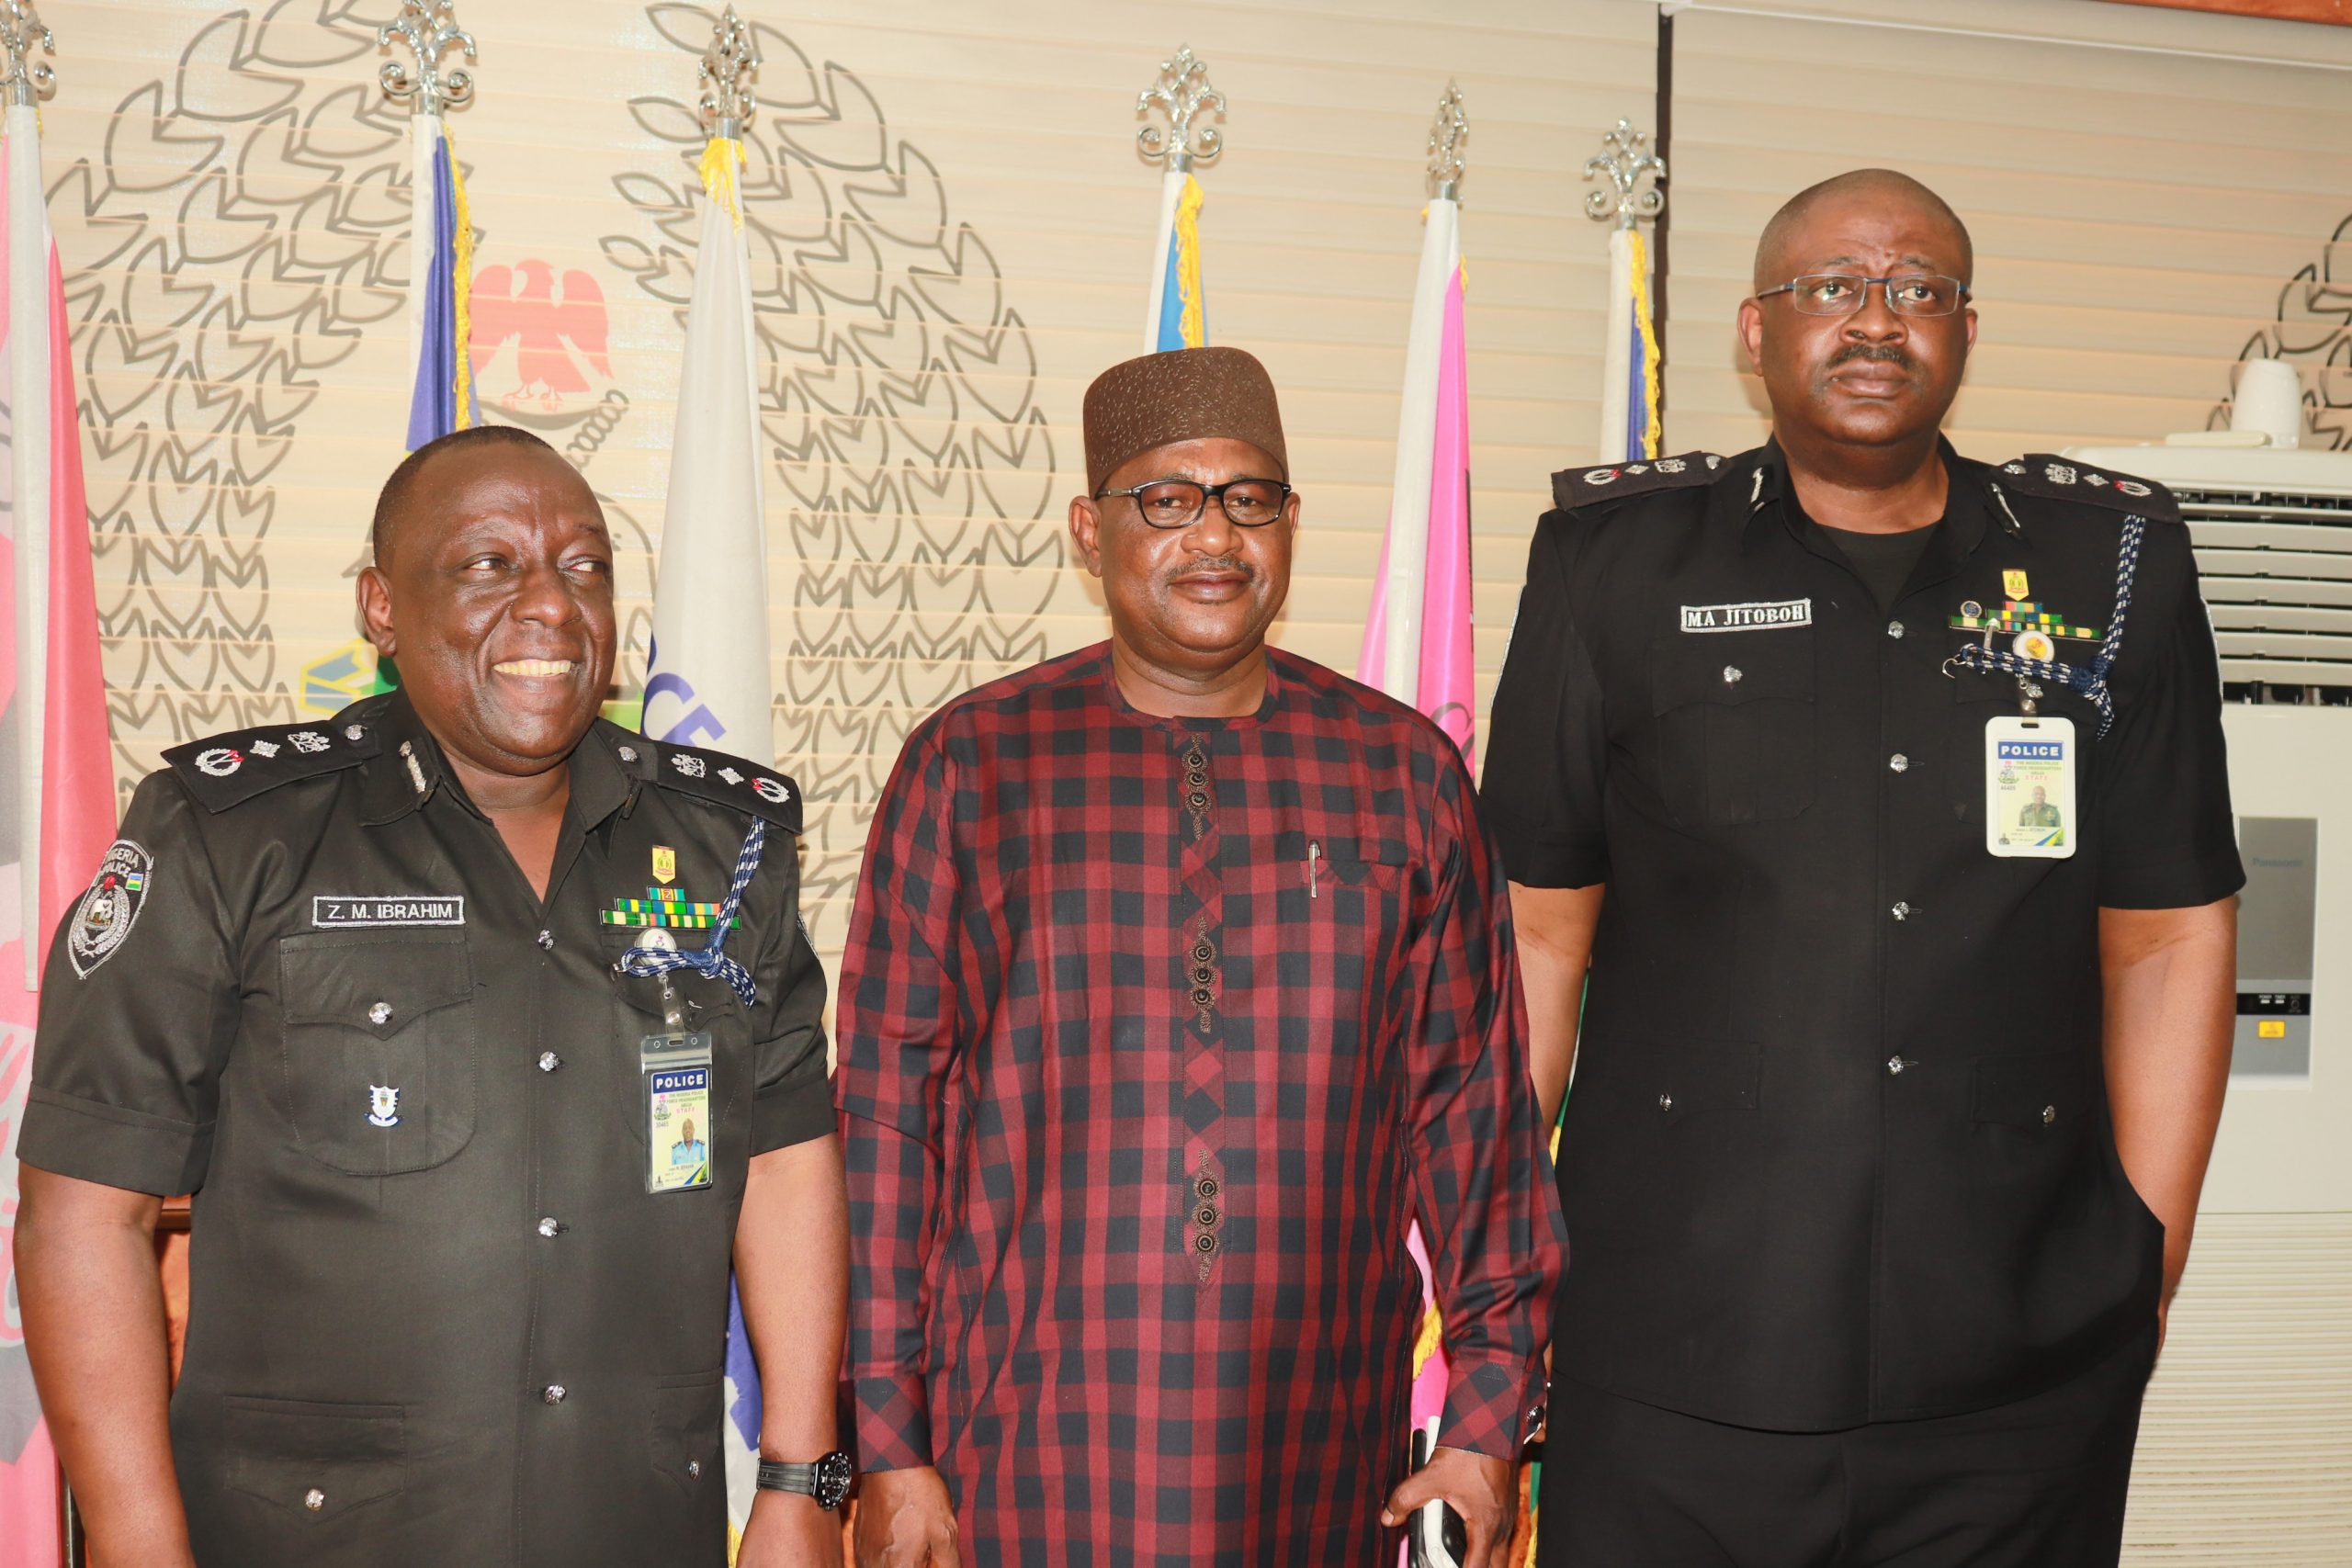 Newly promoted senior officers L R DIG Zanna Ibrahim mni DIG Tijani Baba and DIG Moses Jitoboh mni scaled - IGP Decorates Newly Promoted DIGs, Deploys Them To New Positions (Photos)